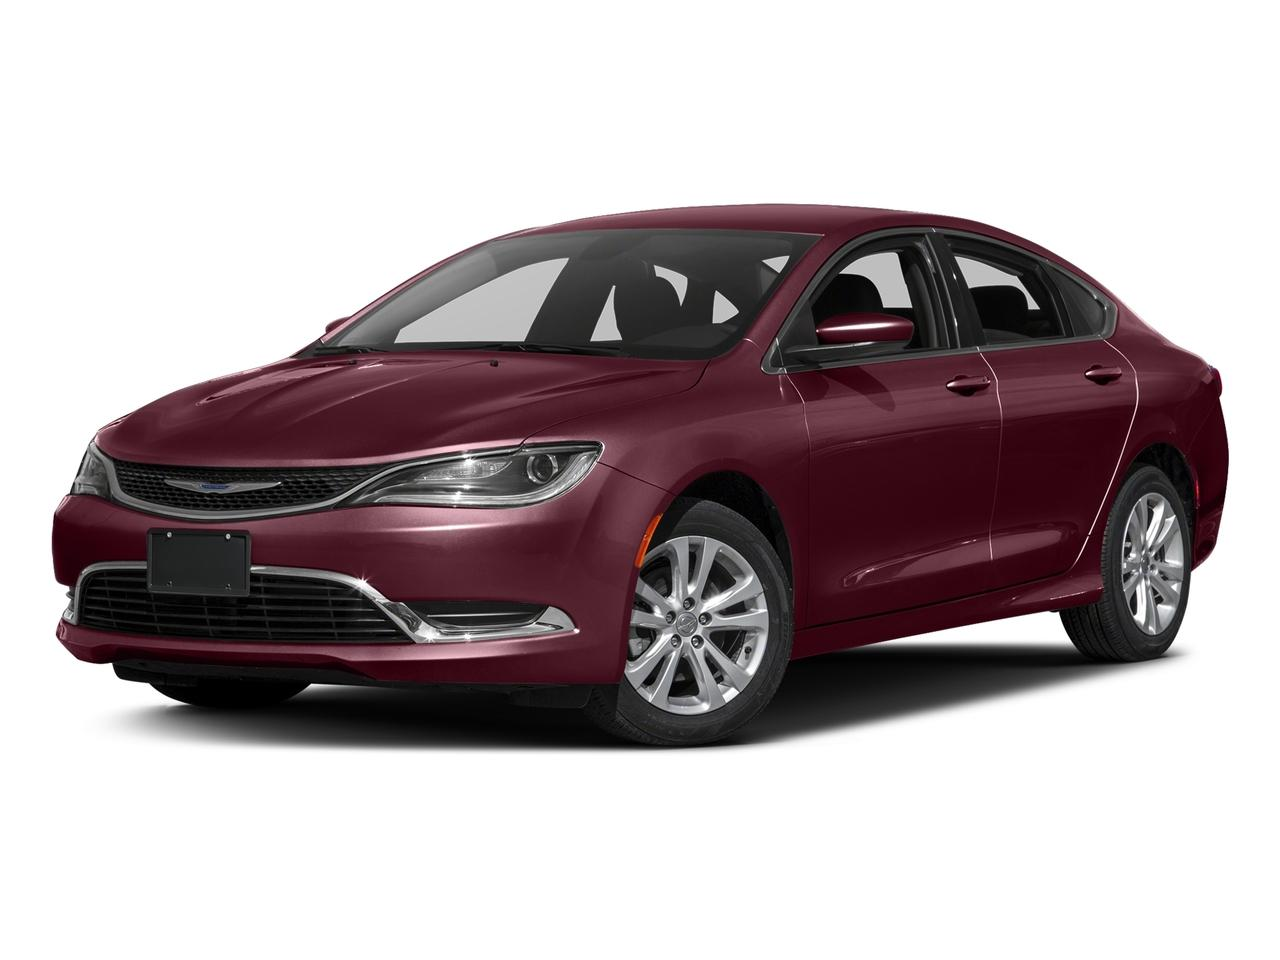 2016 Chrysler 200 Vehicle Photo in Medina, OH 44256